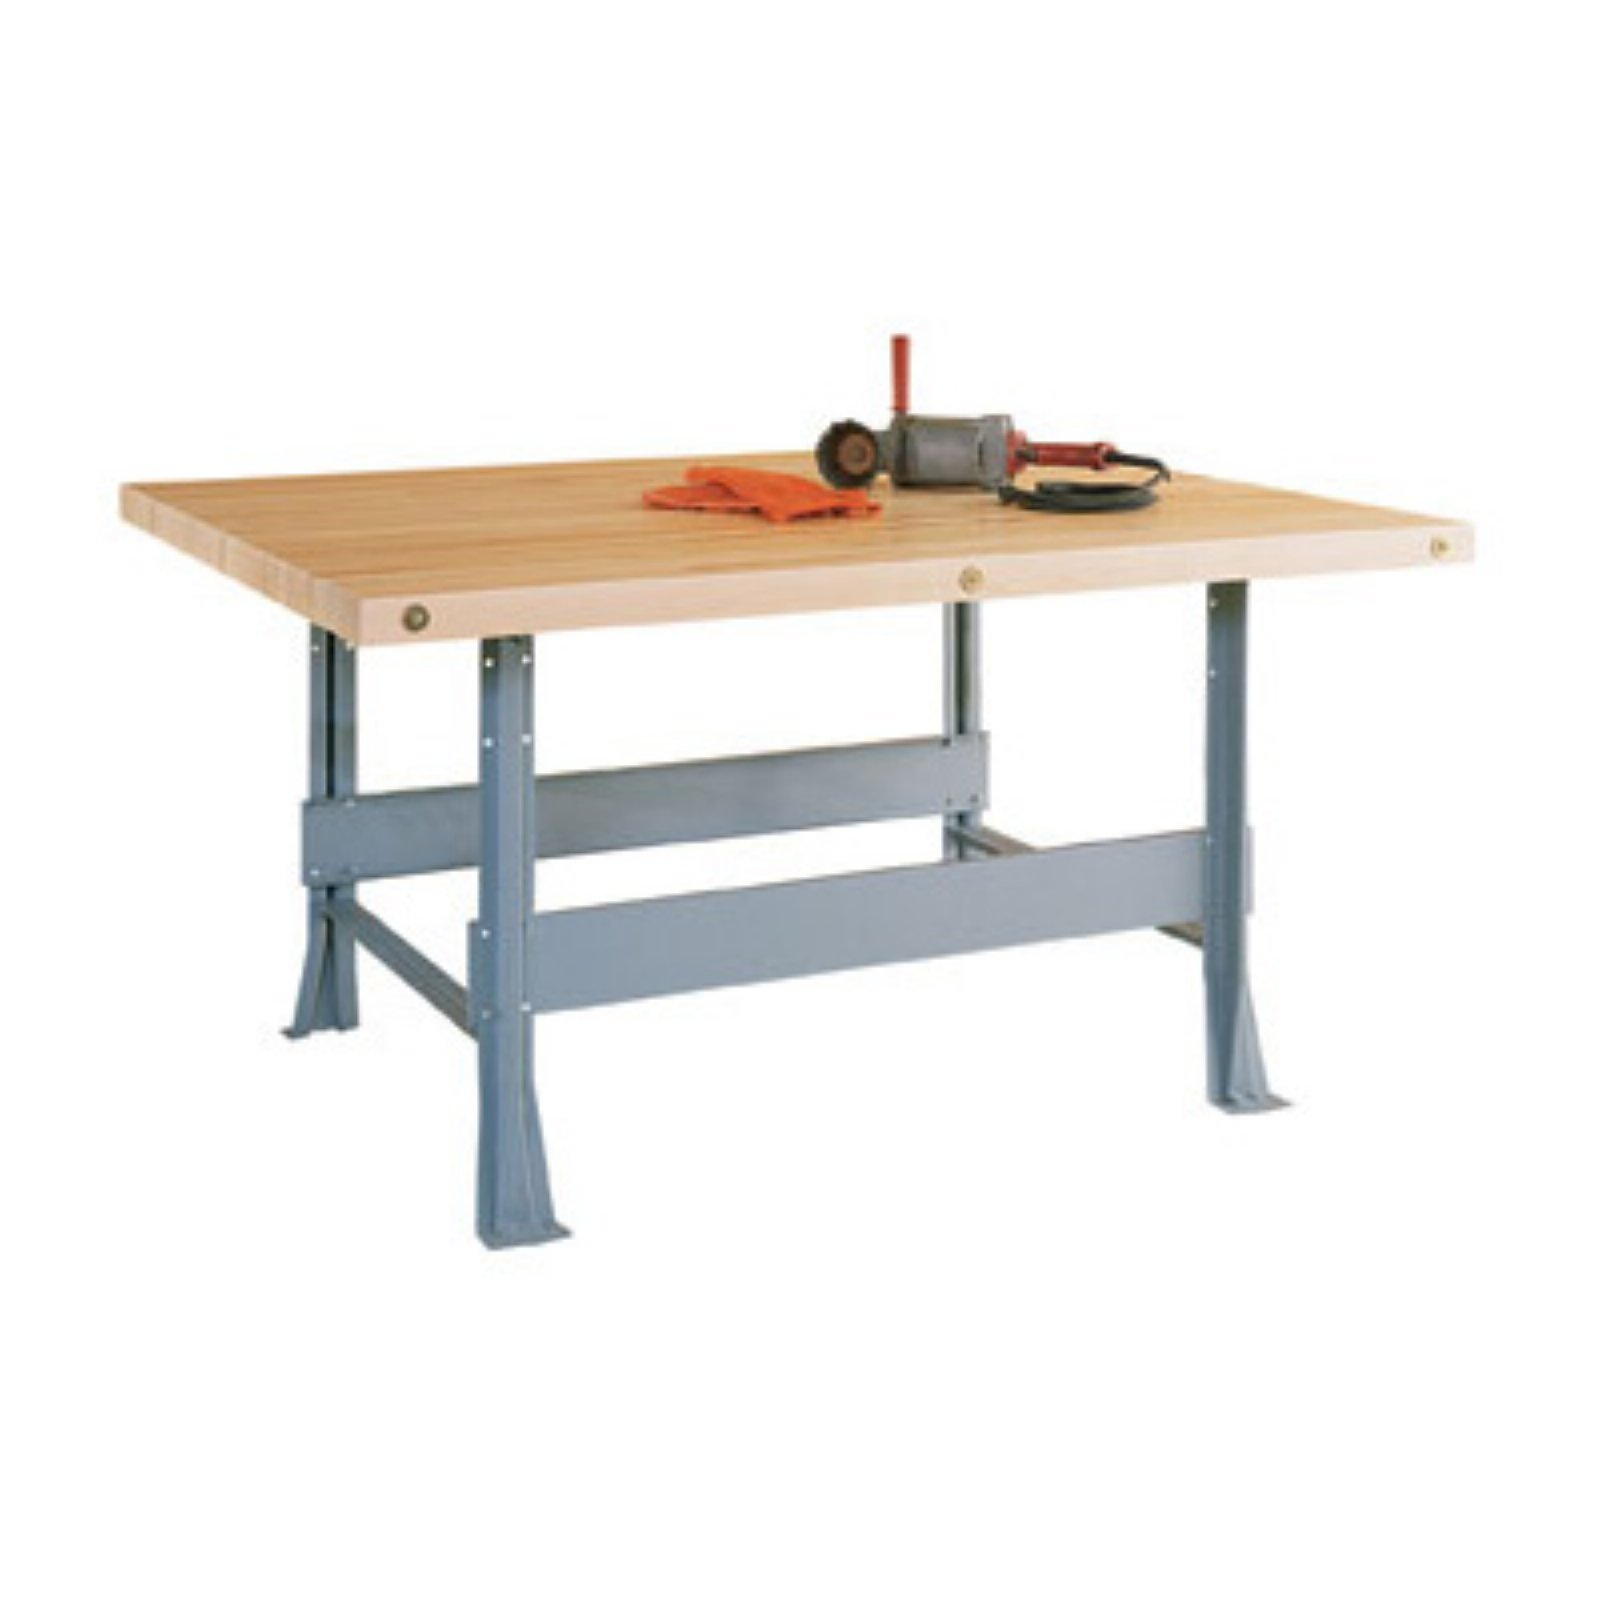 Diversified Woodcrafts Two Station Steel Workbench by Diversified Woodcraft Inc